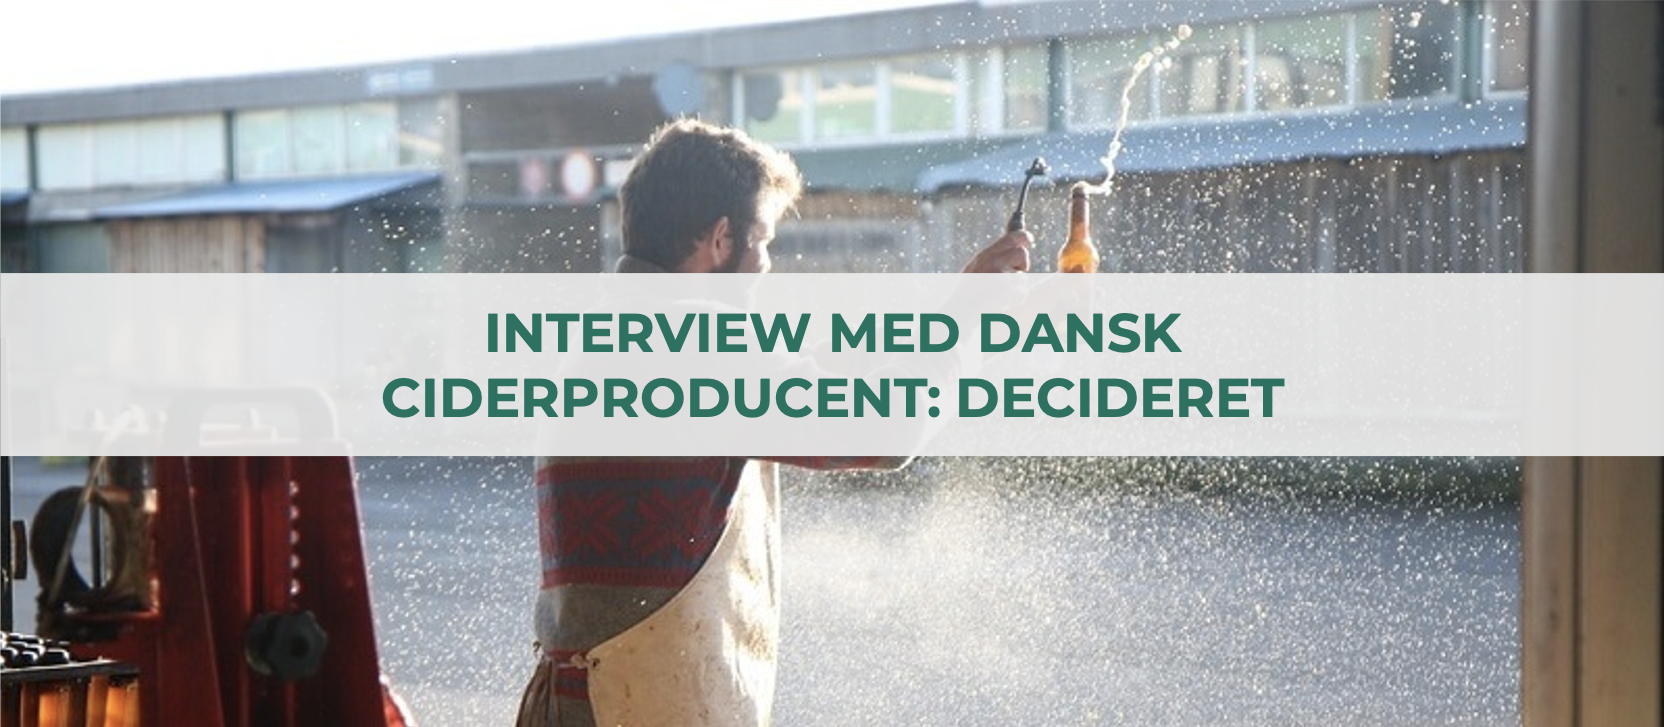 Decideret Interview